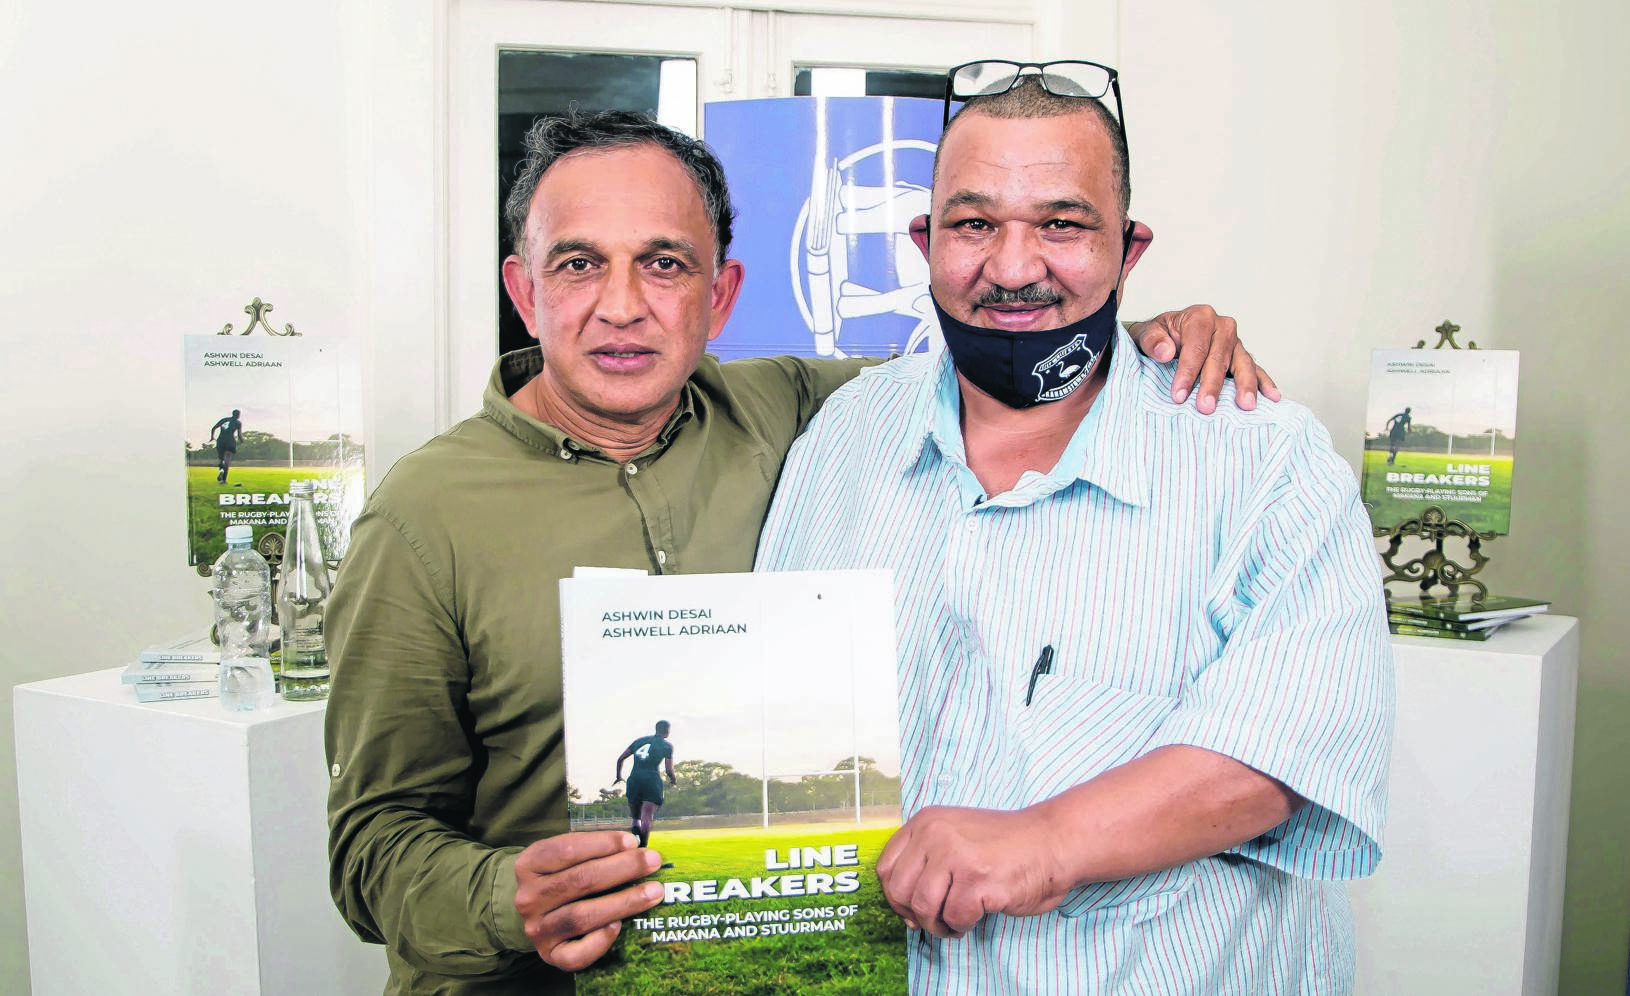 Professor Ashwin Desai (left) and Ashwell Adriaan co-authors of 'Line Breakers: the rugby-playing Sons of Makana and Stuurman'.